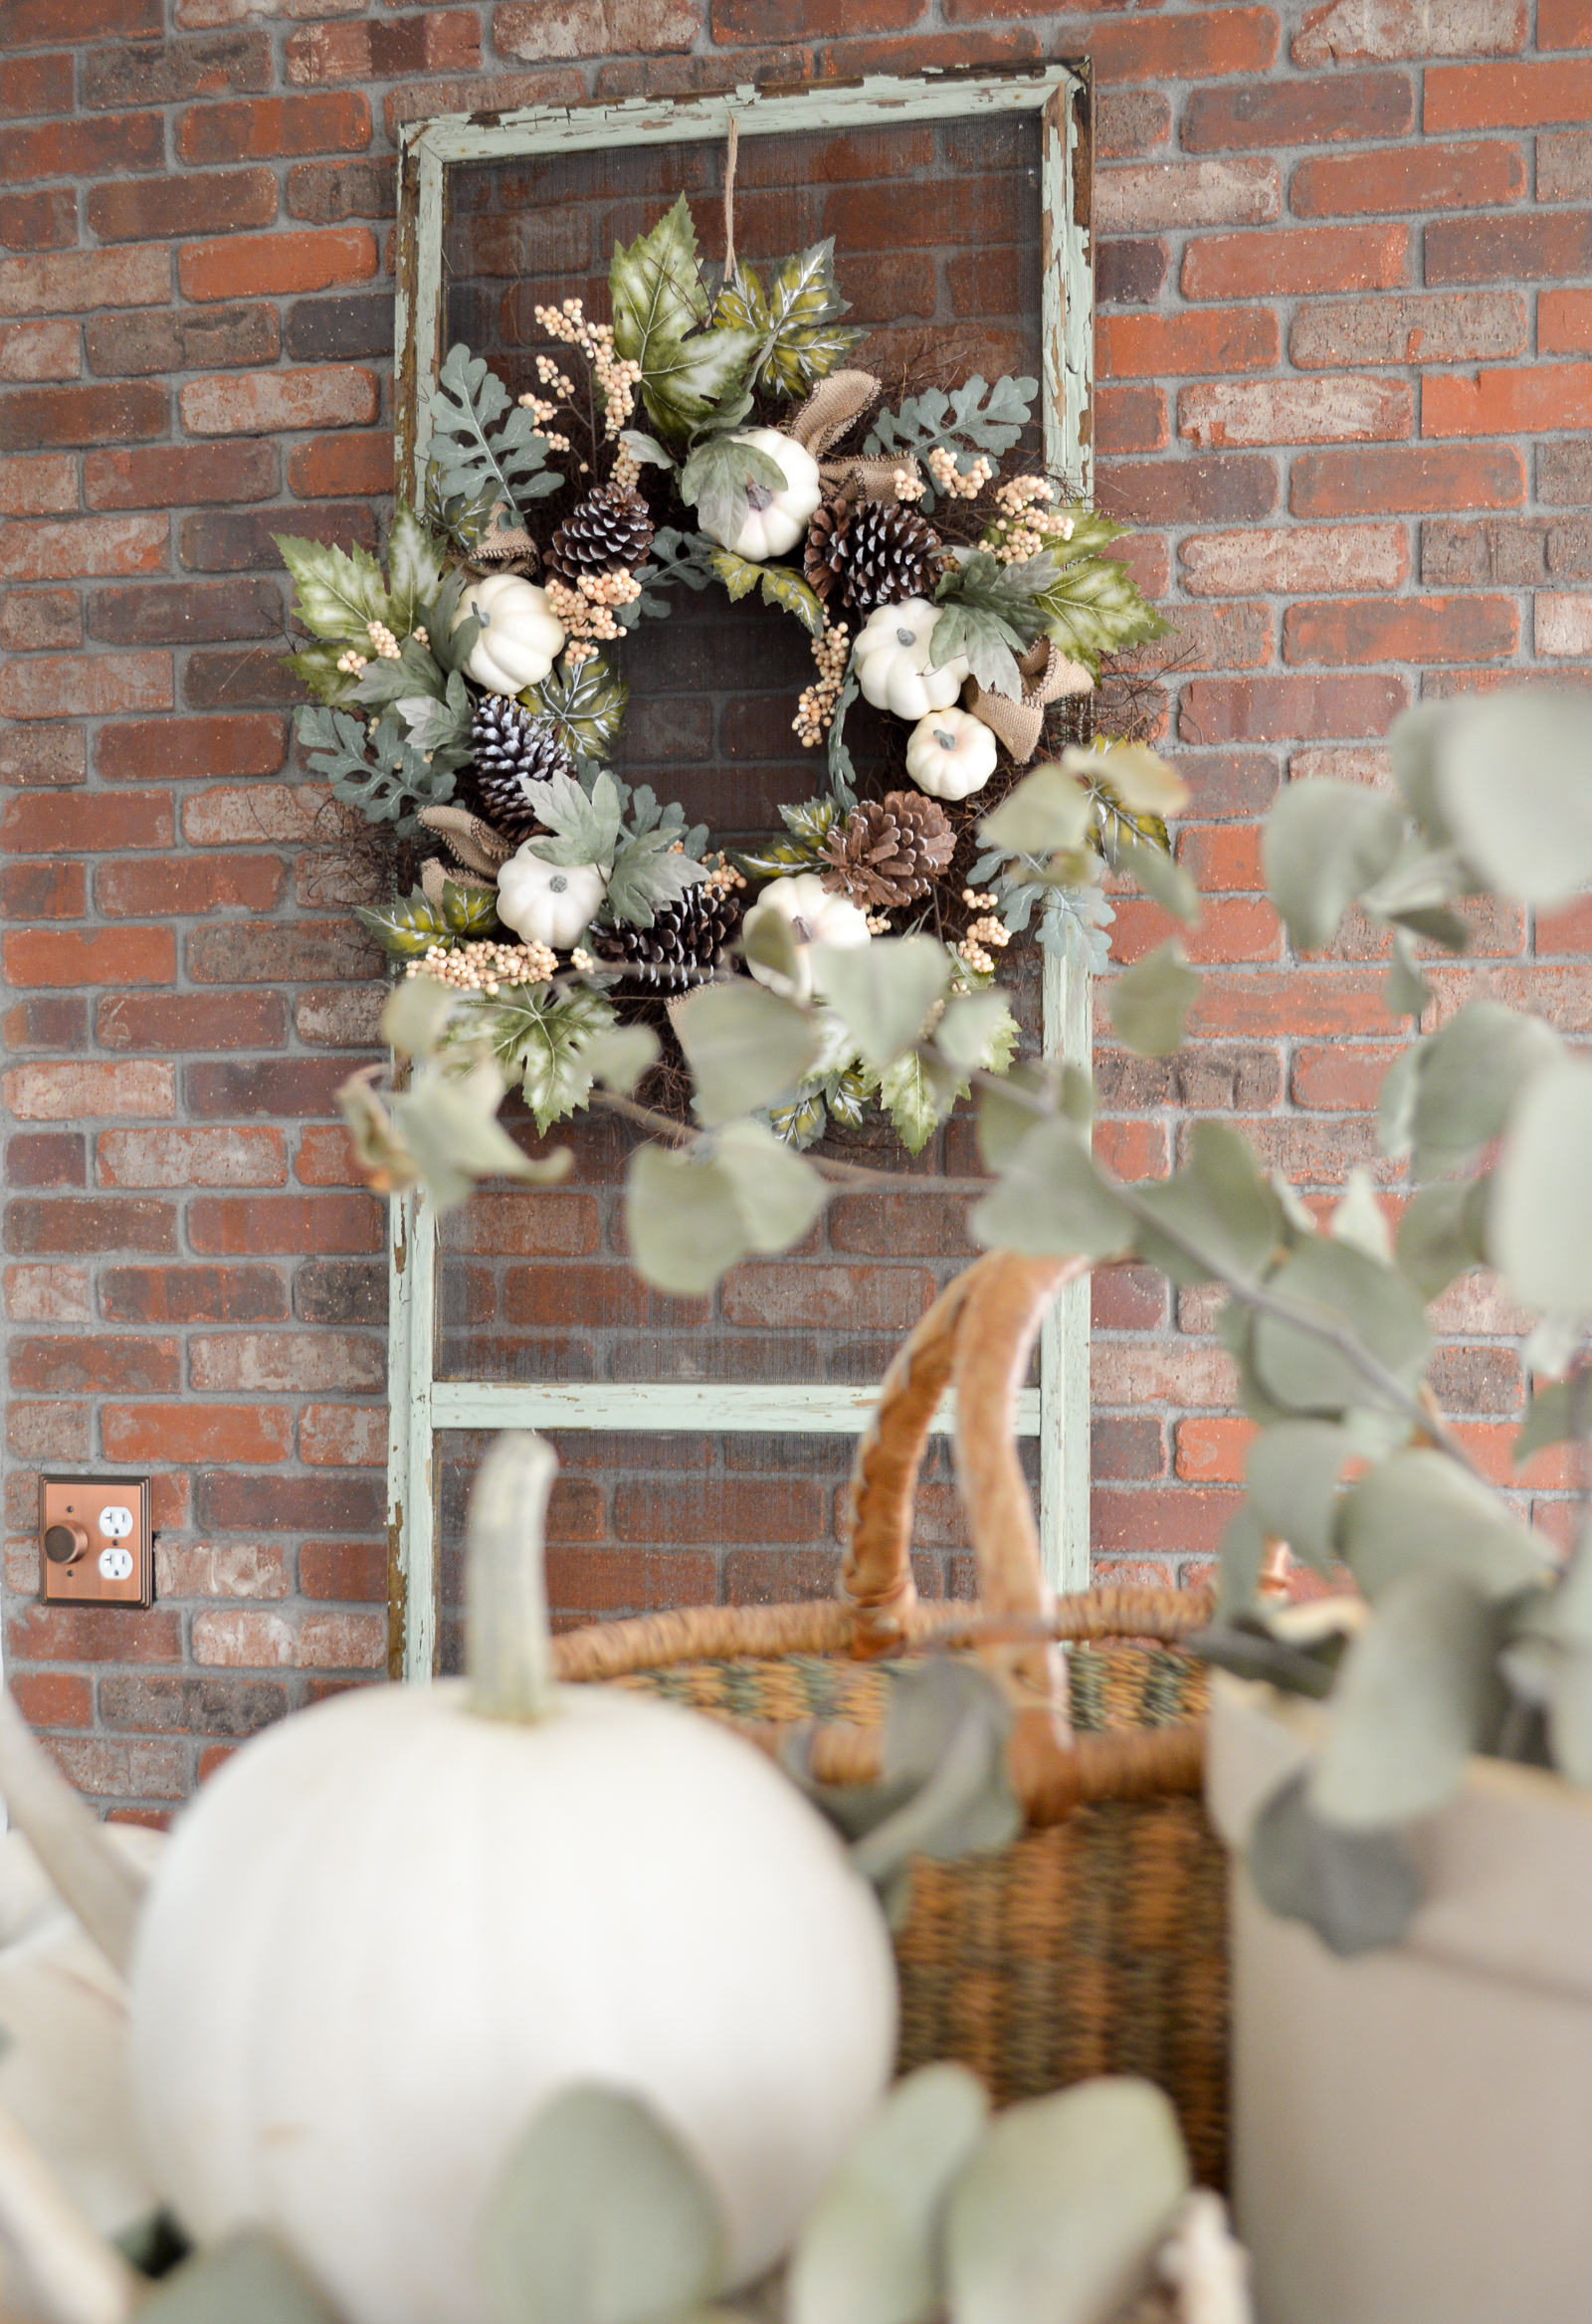 Late Autumn Decorating at the Cottage